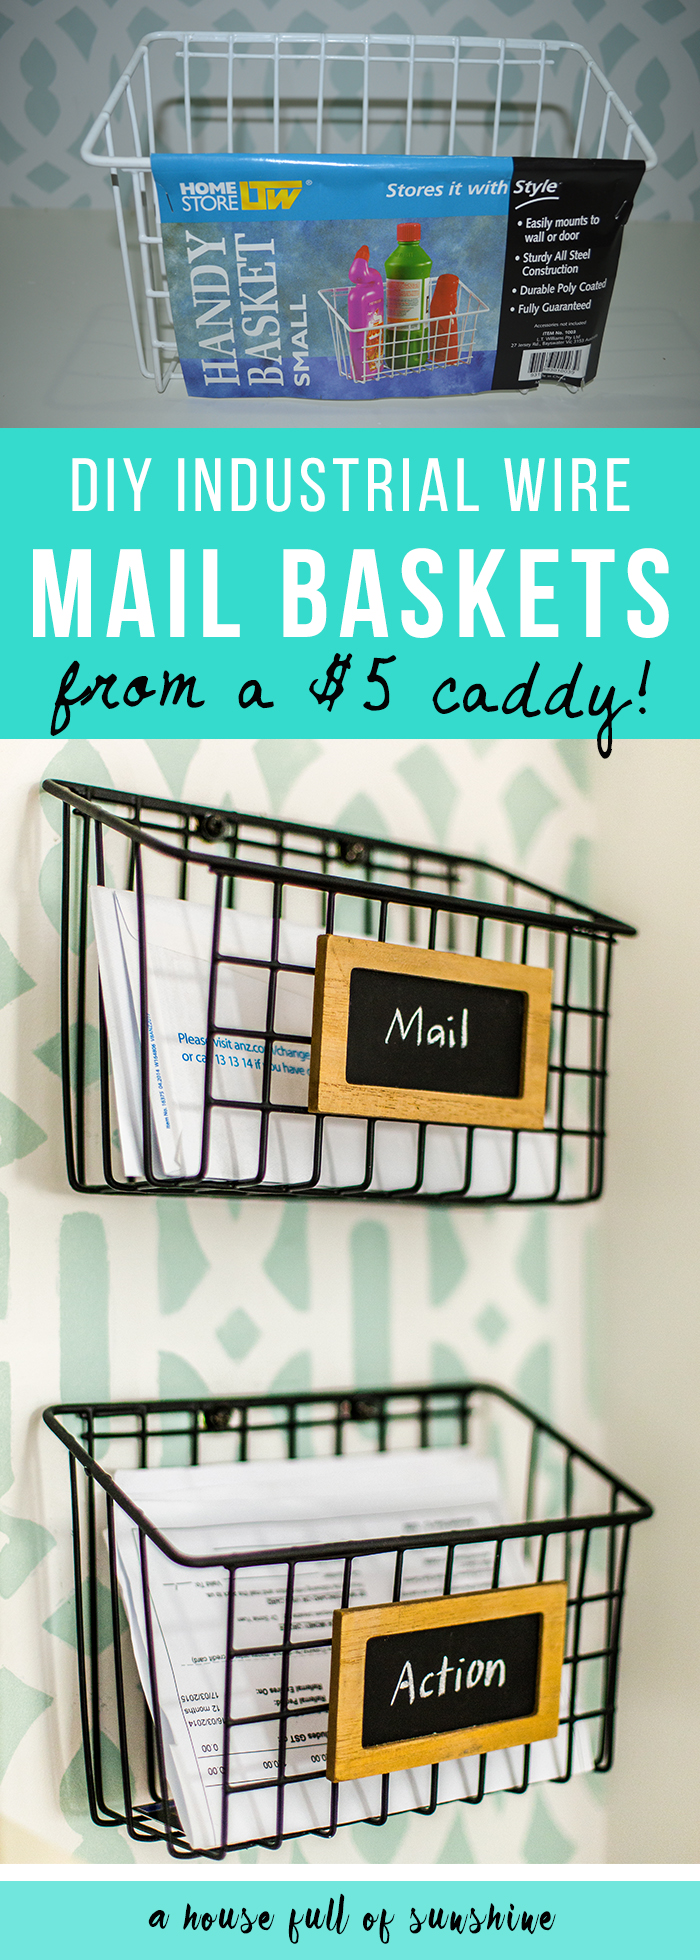 Diy industrial wire mail baskets a house full of sunshine for Diy industrial